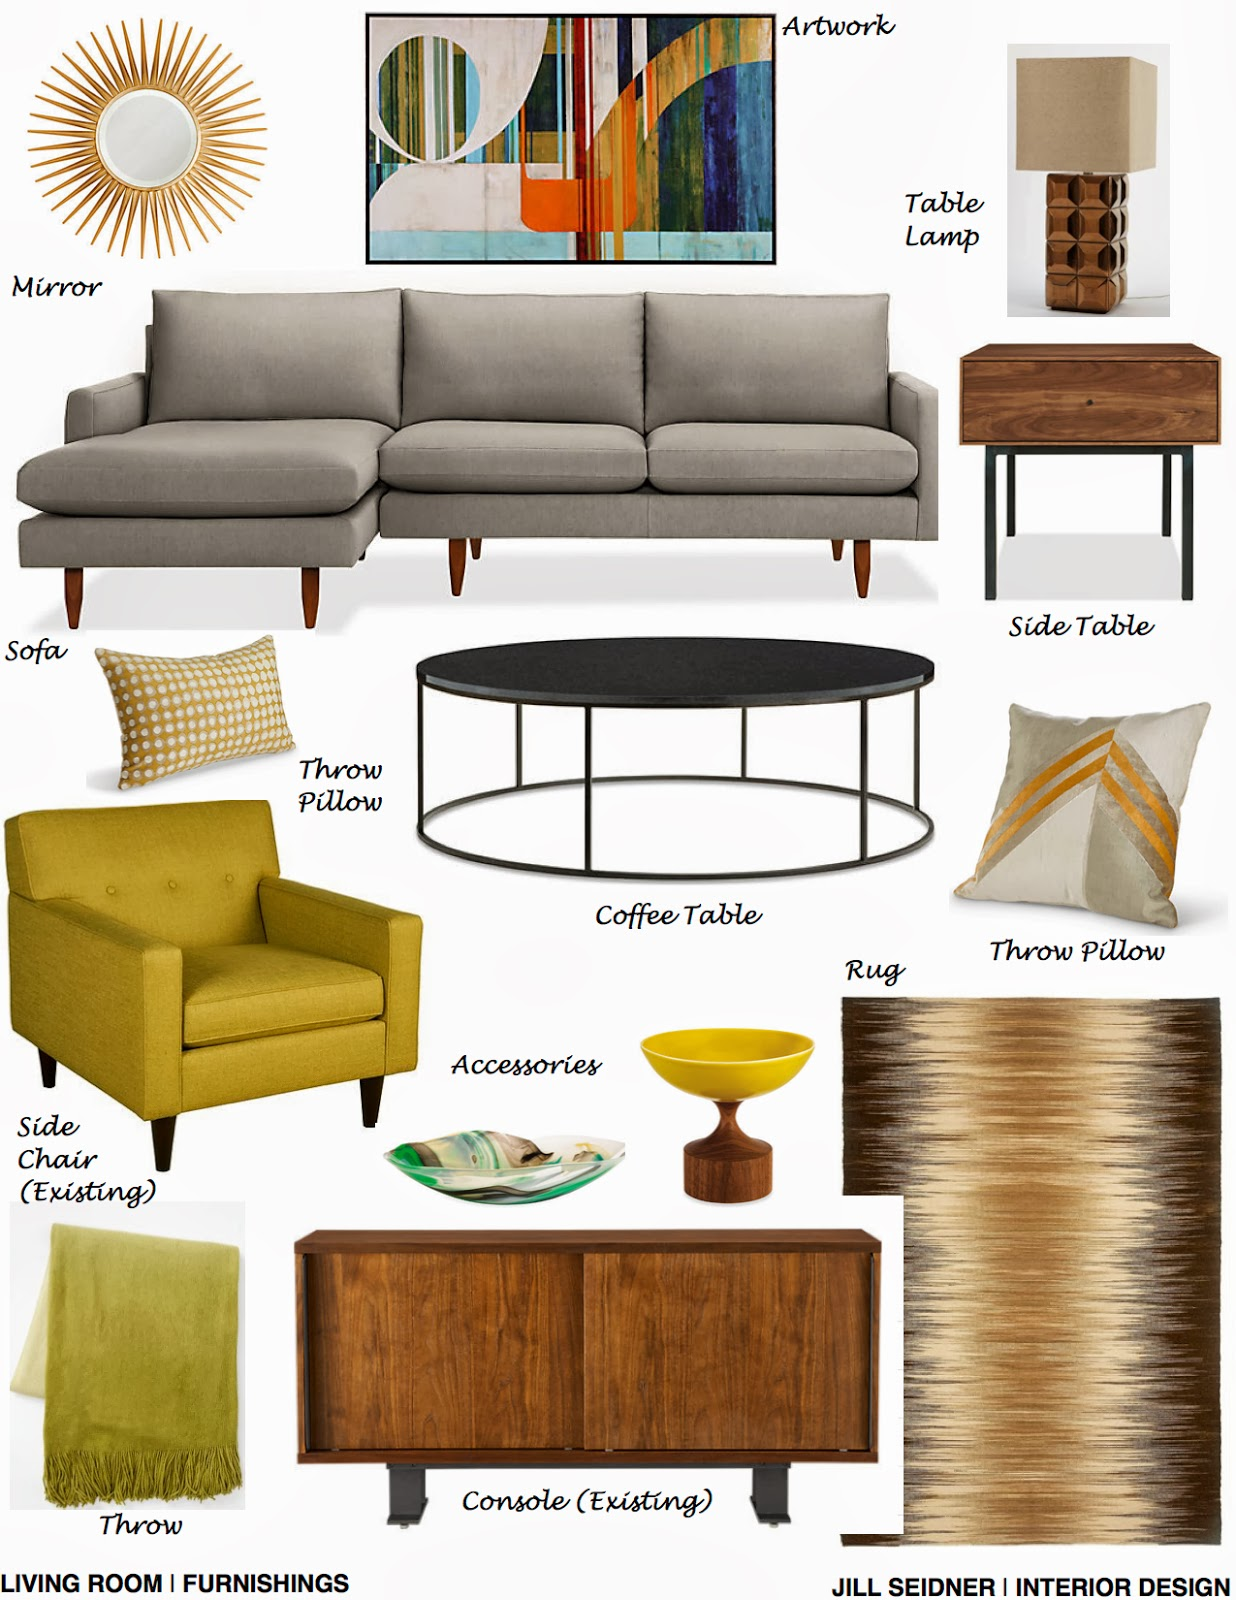 Design Interieur Concept Jill Seidner Interior Design Concept Boards